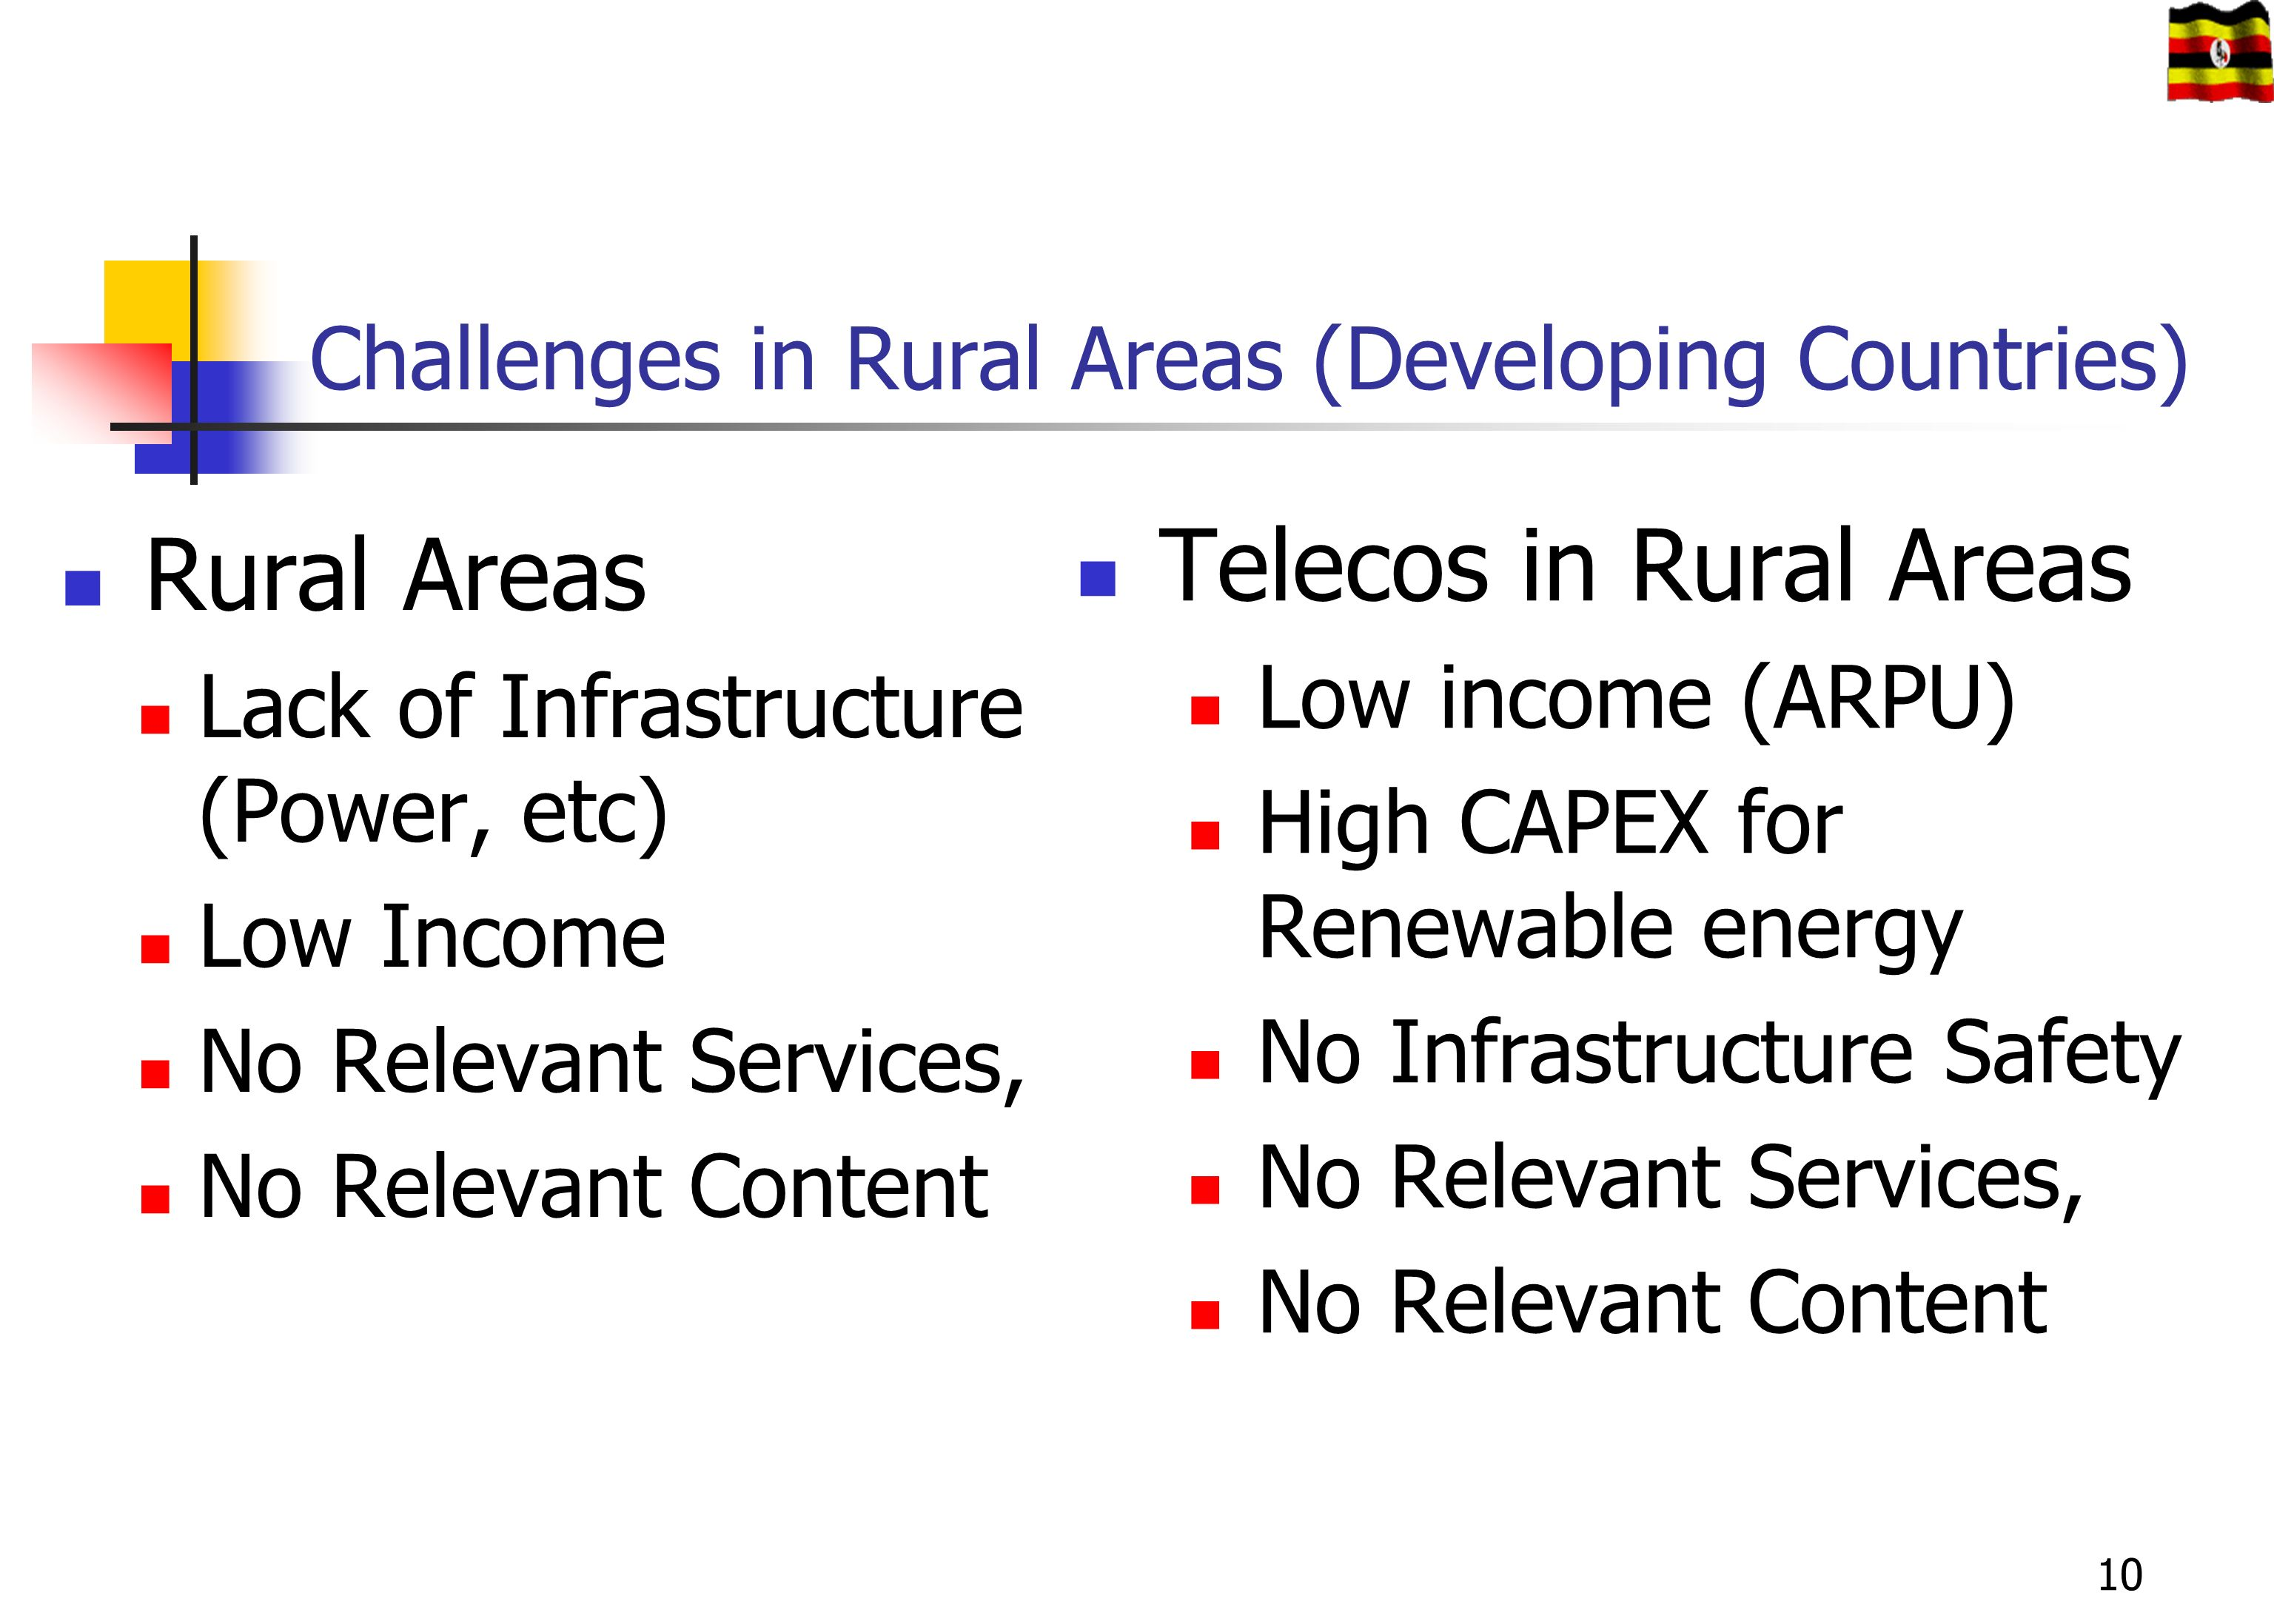 Challenges in Rural Areas (Developing Countries)